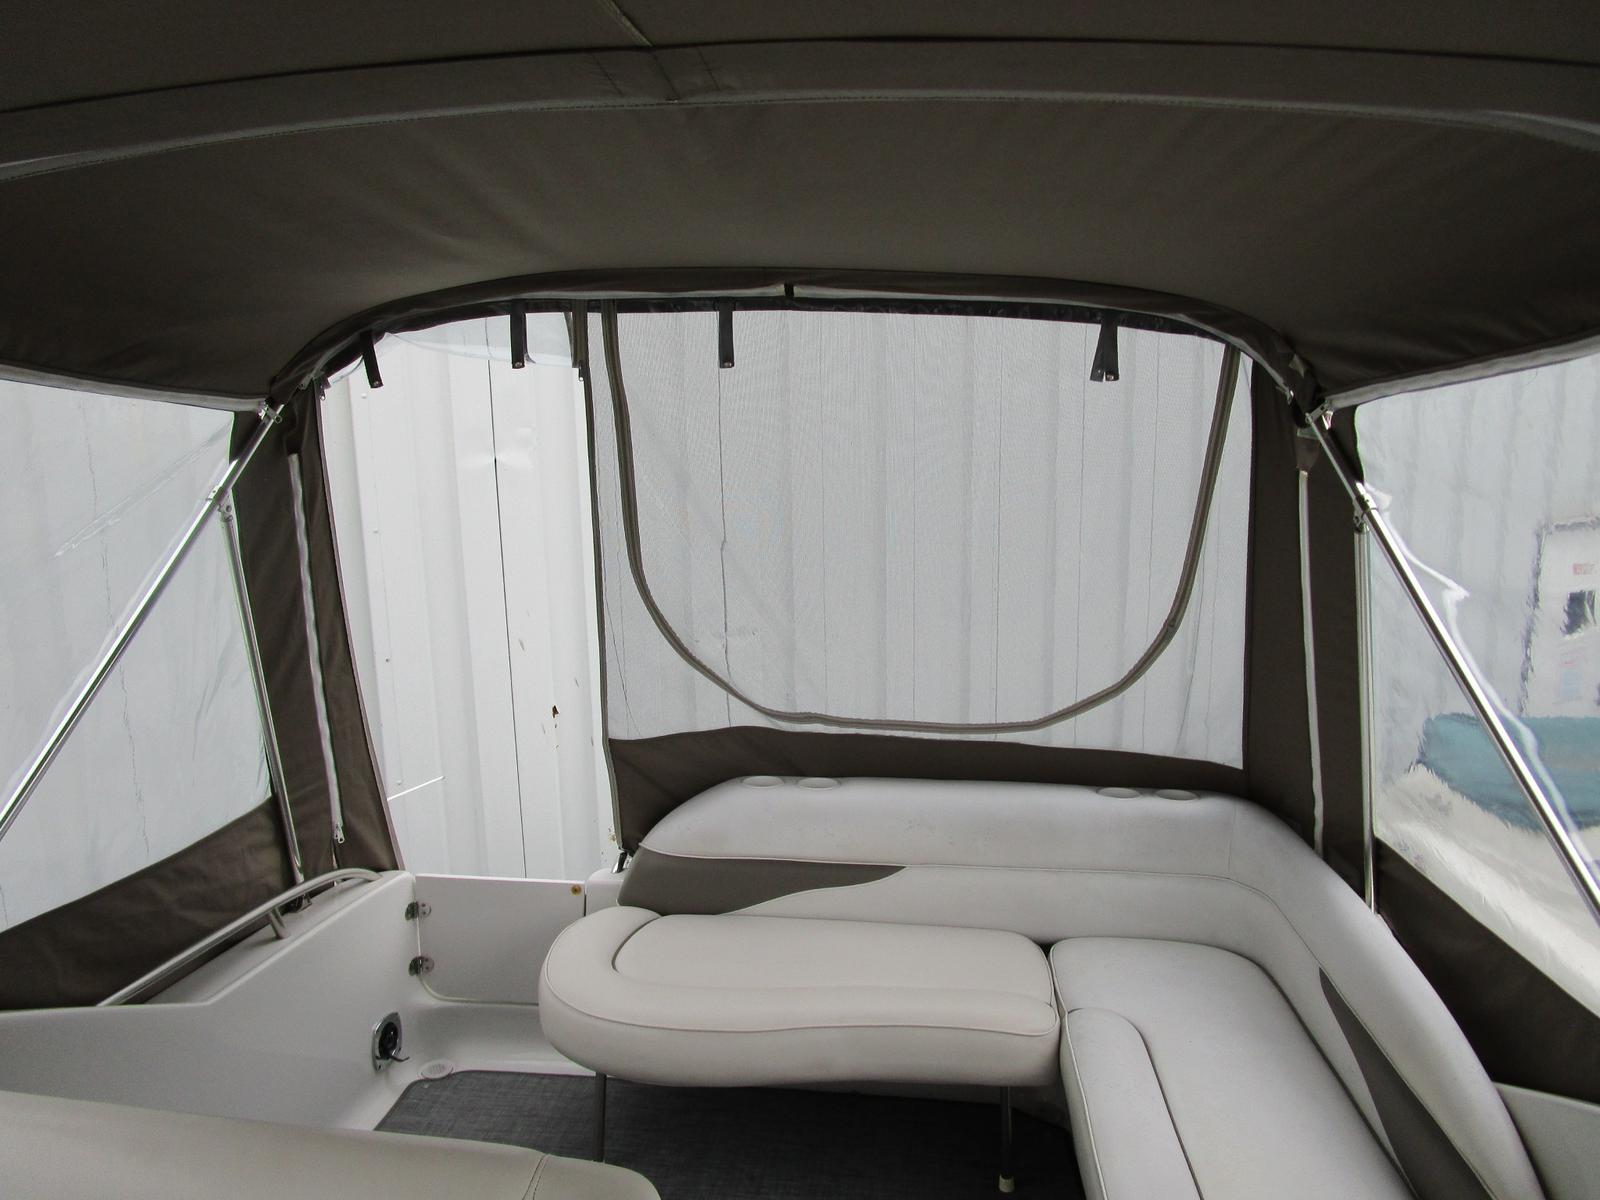 2003 Crownline boat for sale, model of the boat is 262 CR & Image # 10 of 11